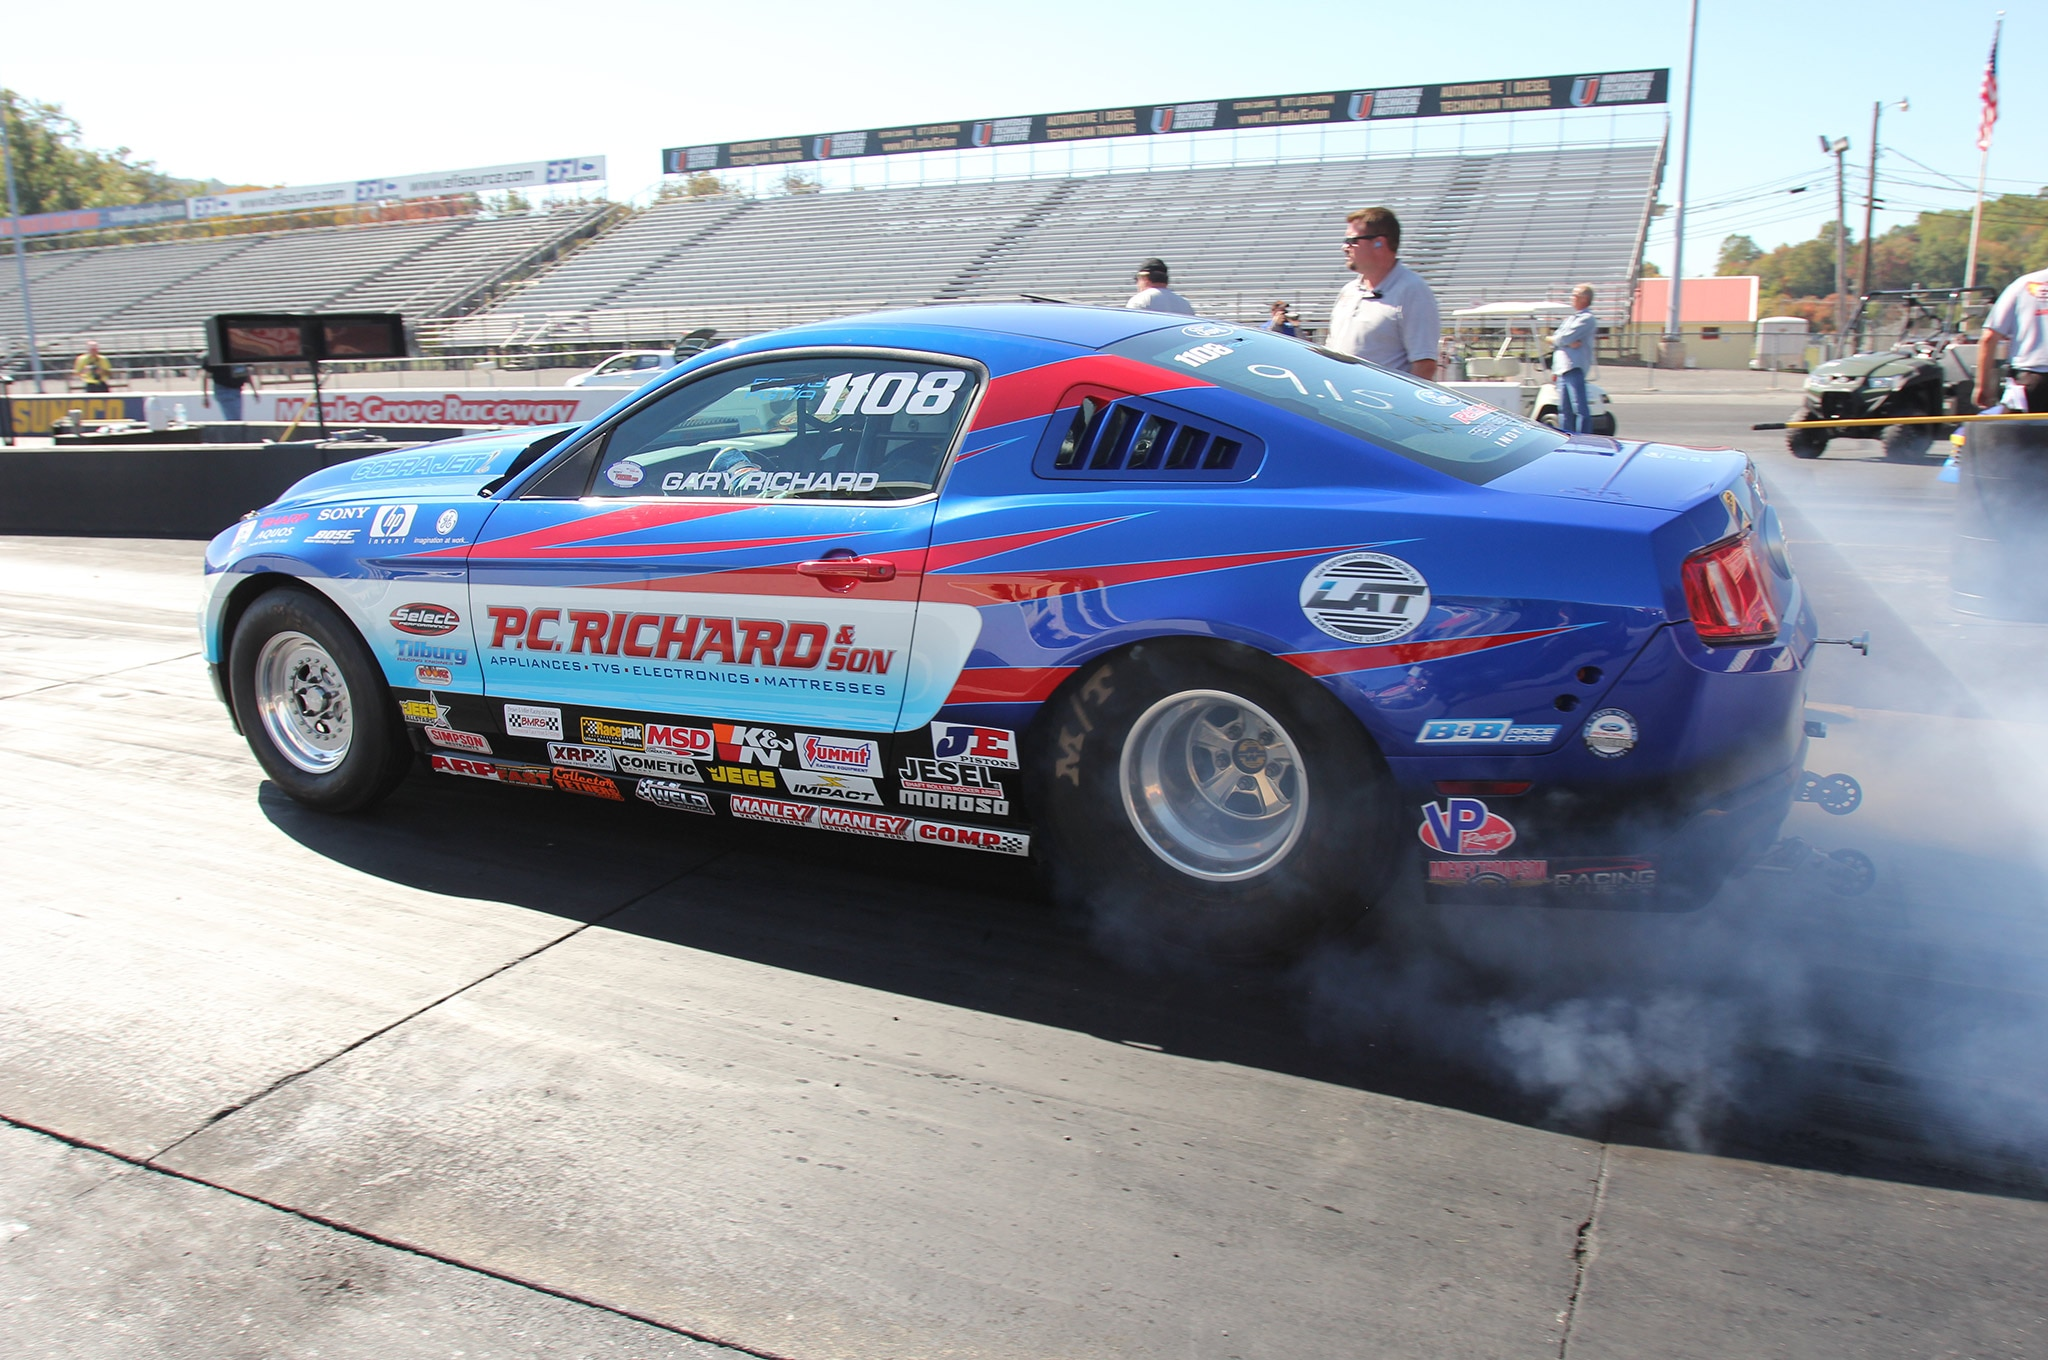 2015 Nhra Division 1 Dutch Mustangs 14